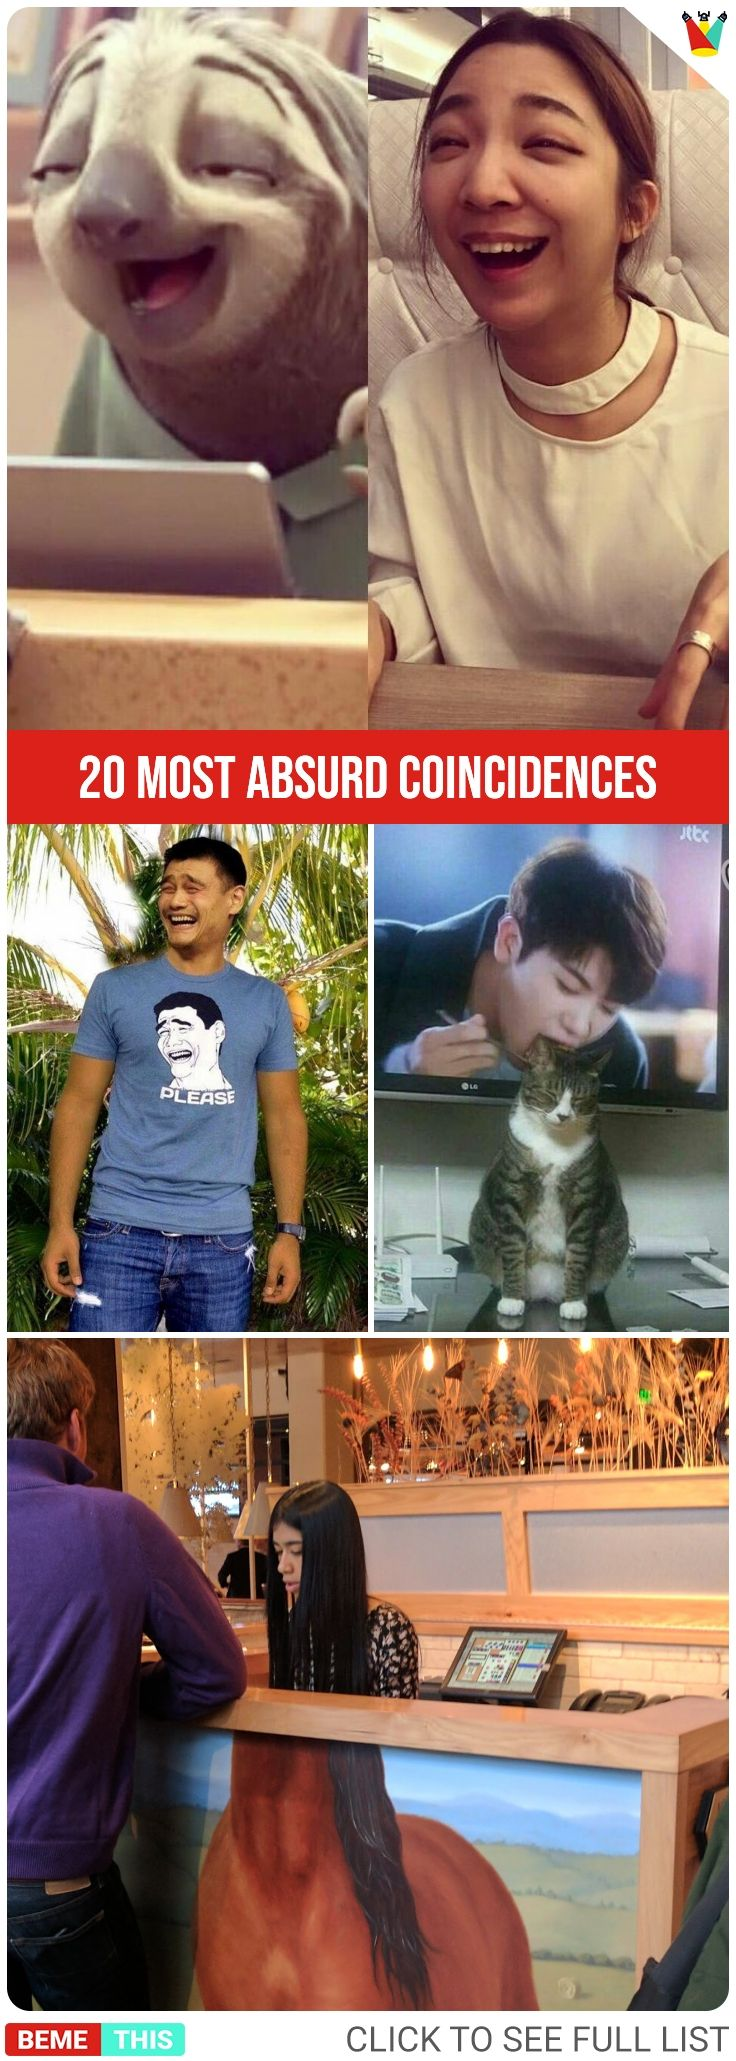 20 Most Absurd Coincidences